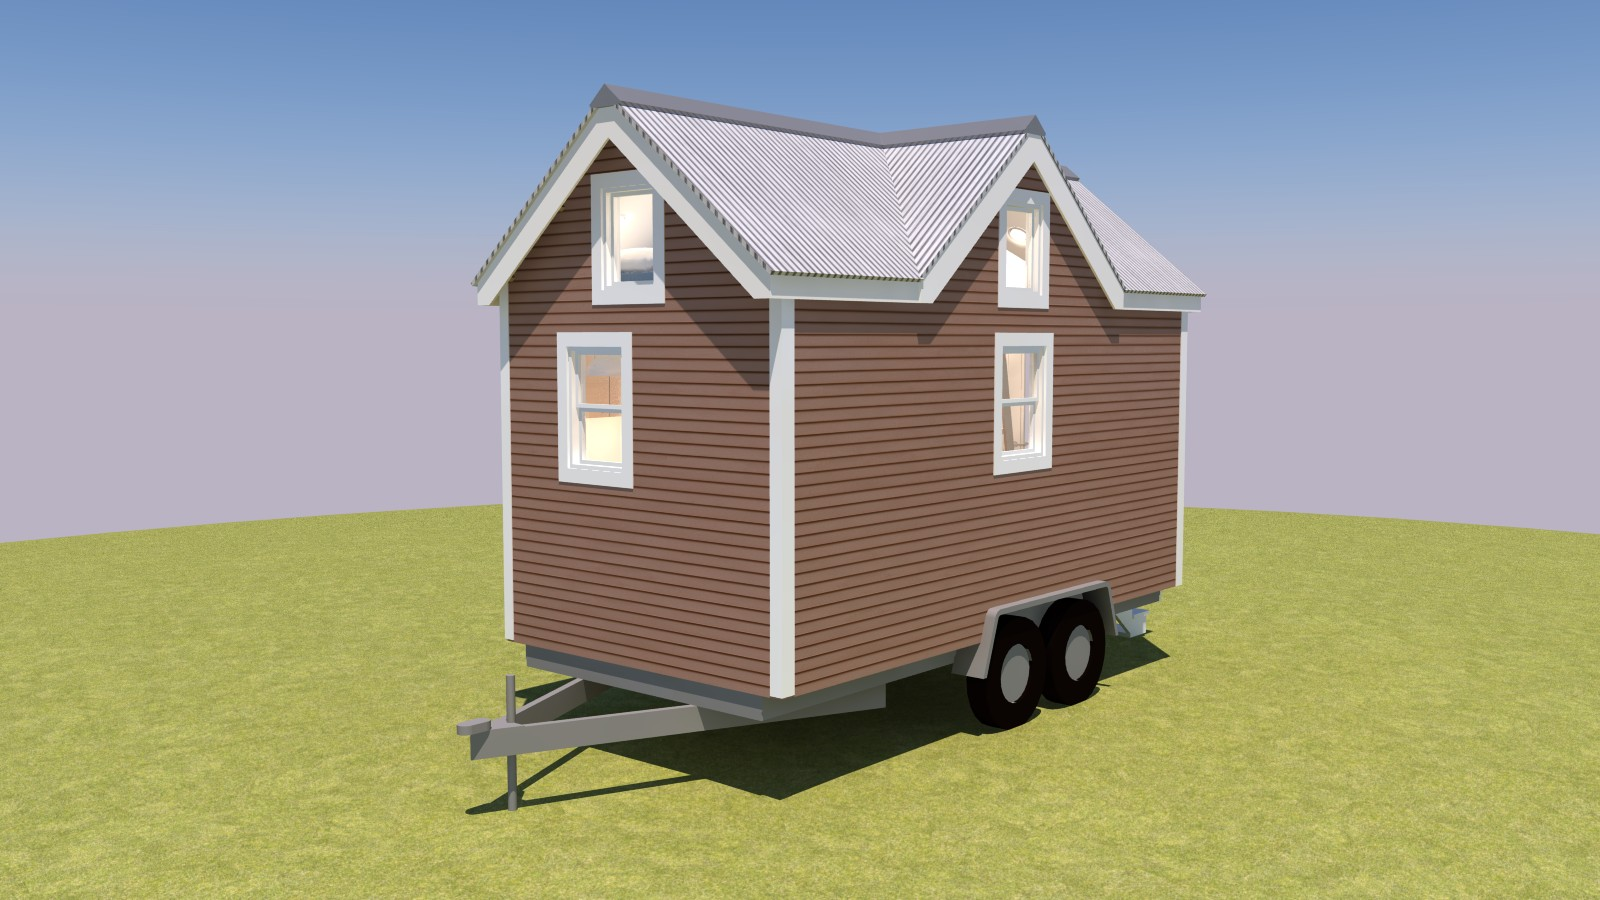 Albion-16-Tiny-House-Plans-Back-Right